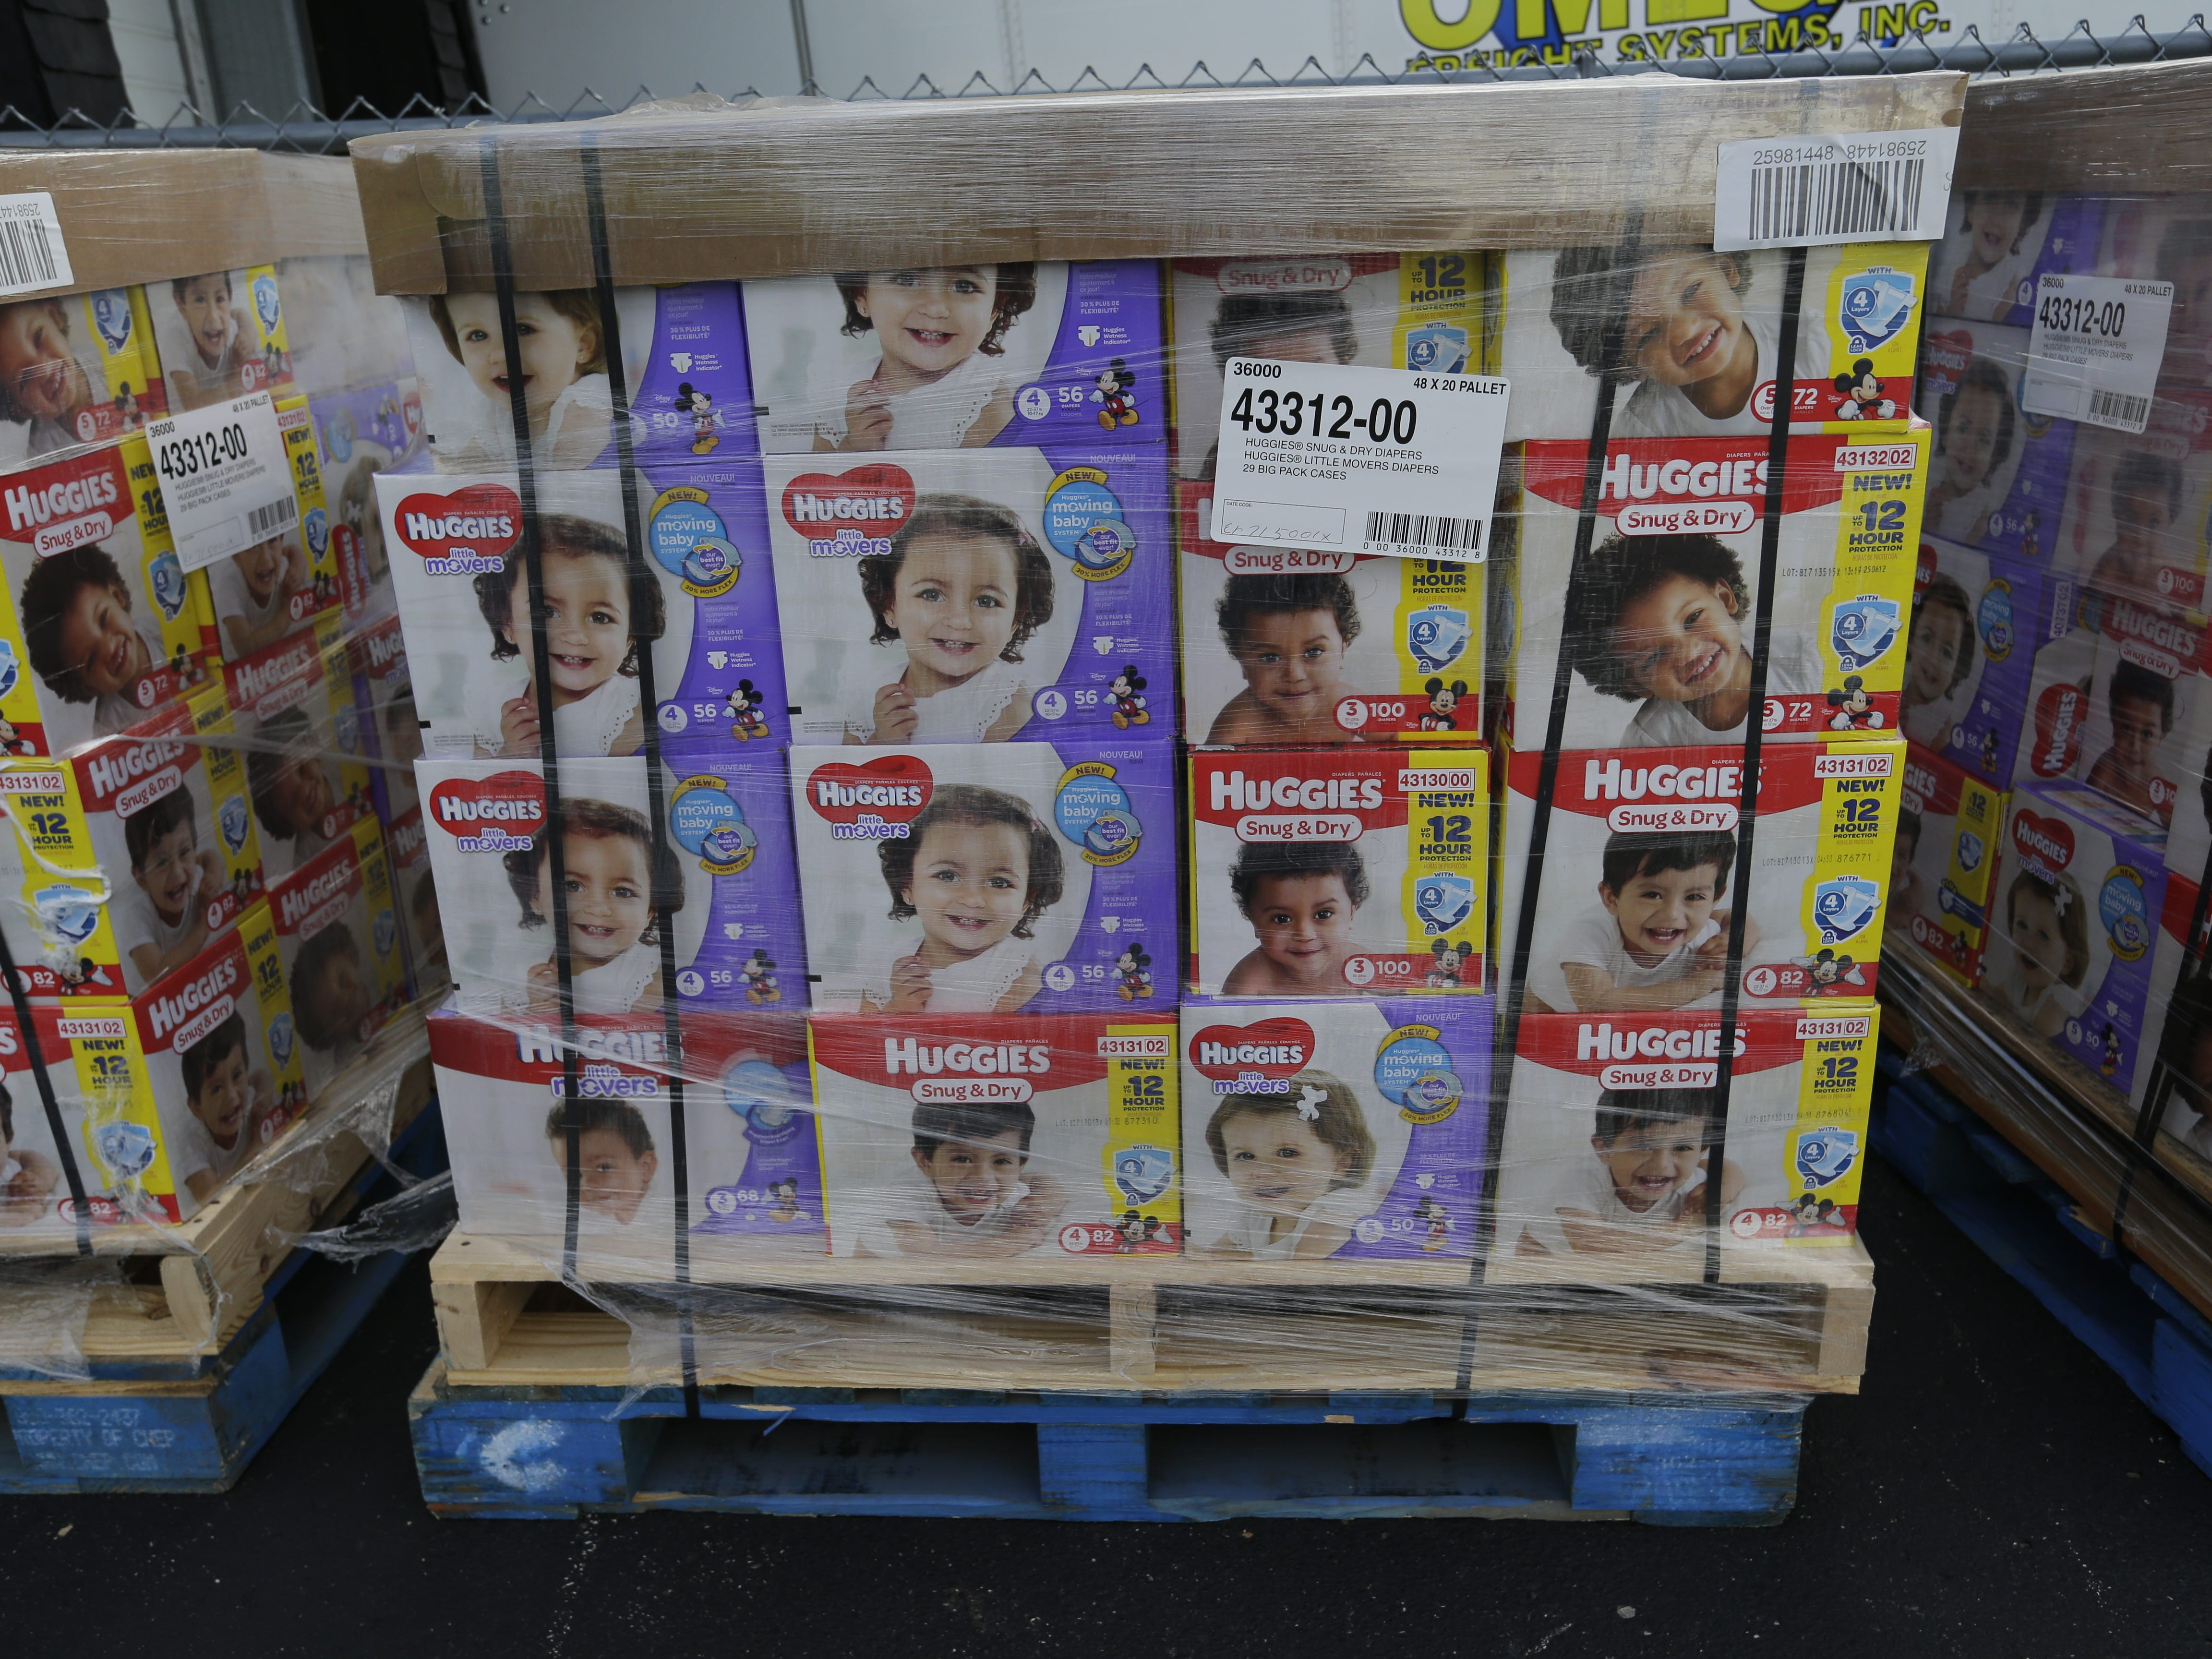 The Oshkosh Area Community Food Pantry gets a donation of 50 pallets with 100,400 diapers on them from USA TODAY NETWORK-Wisconsin and Kimberly-Clark Corp. on Monday, Sept. 24, 2018, in Oshkosh. The diapers will go to nine food pantries in the area.